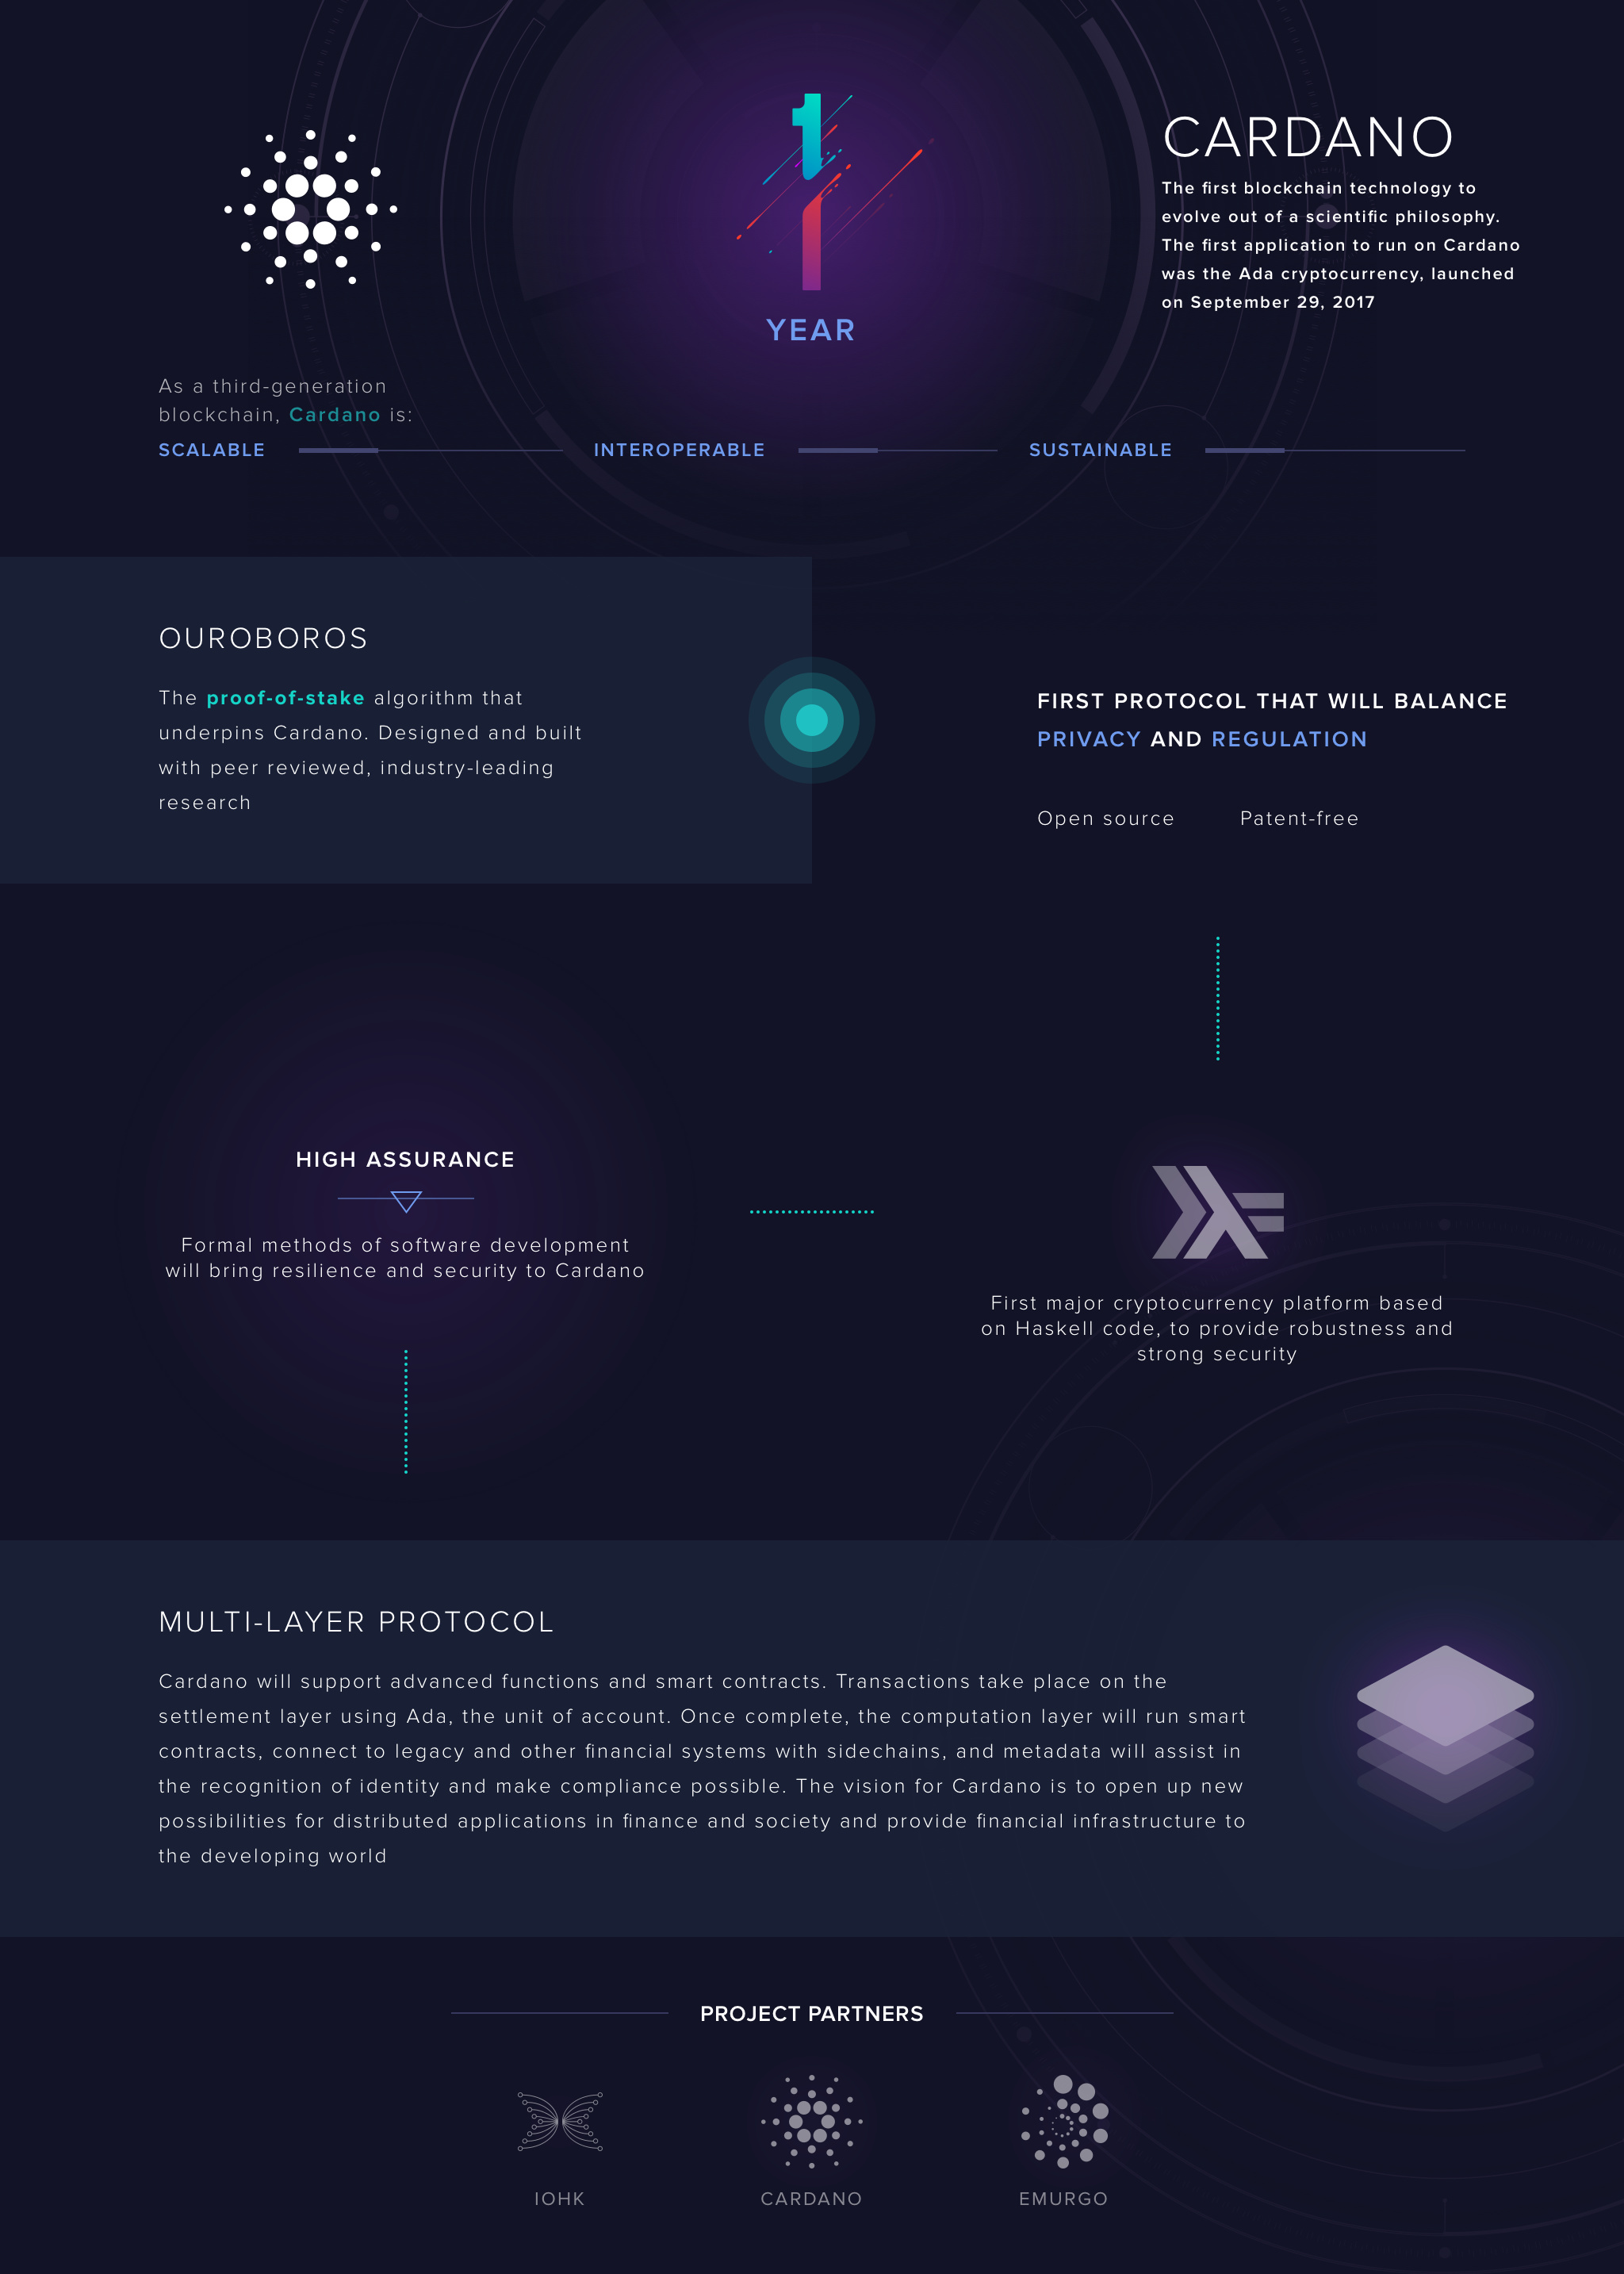 cardano-first-year-anniversary-infographic-series-0